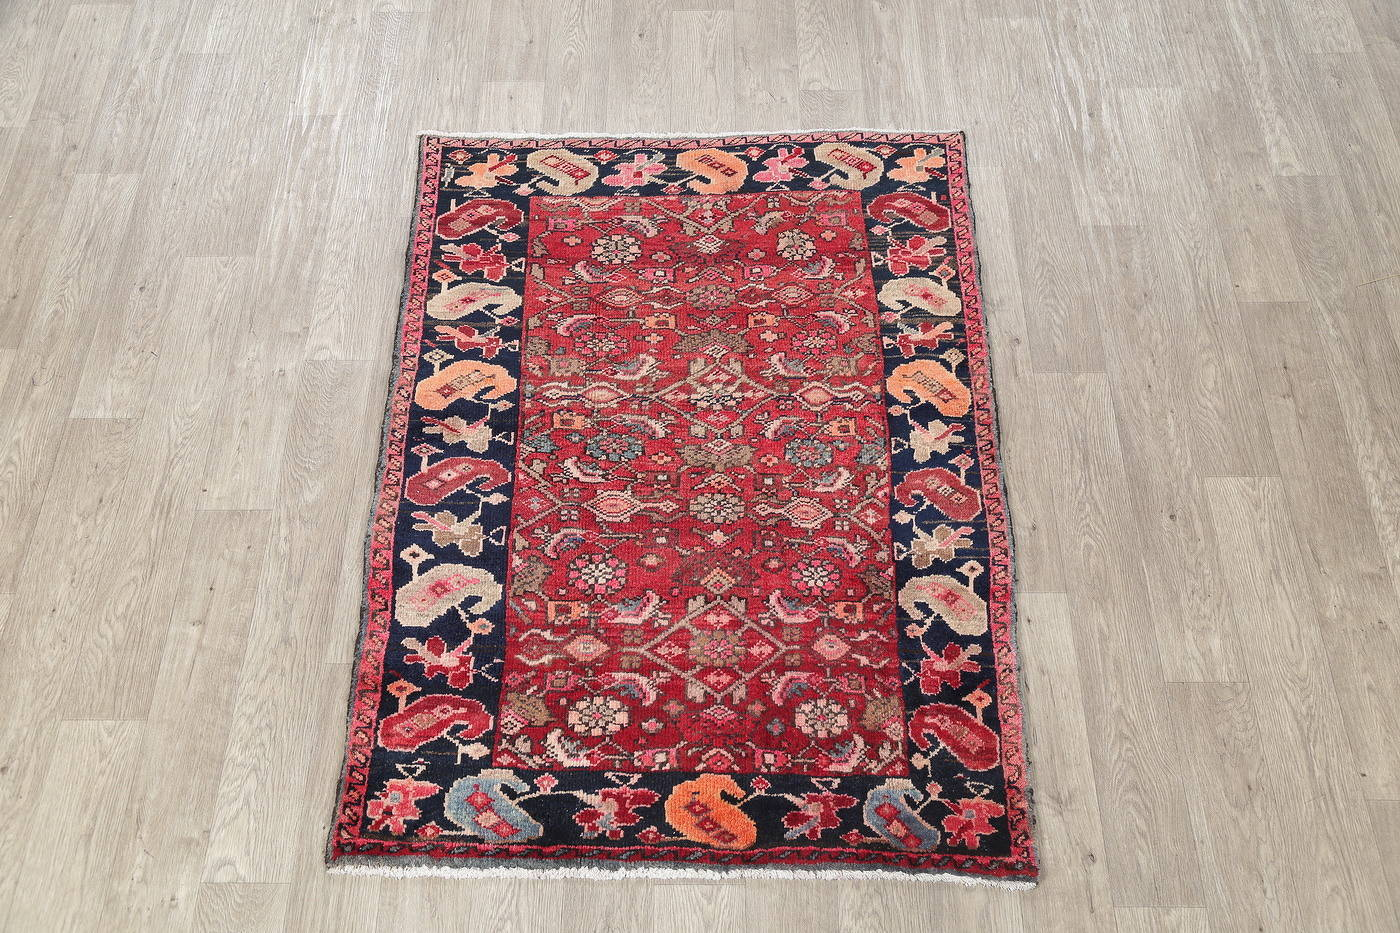 Hand-Knotted Red Geometric Heriz Persian Area Rug Wool 4x5 image 2